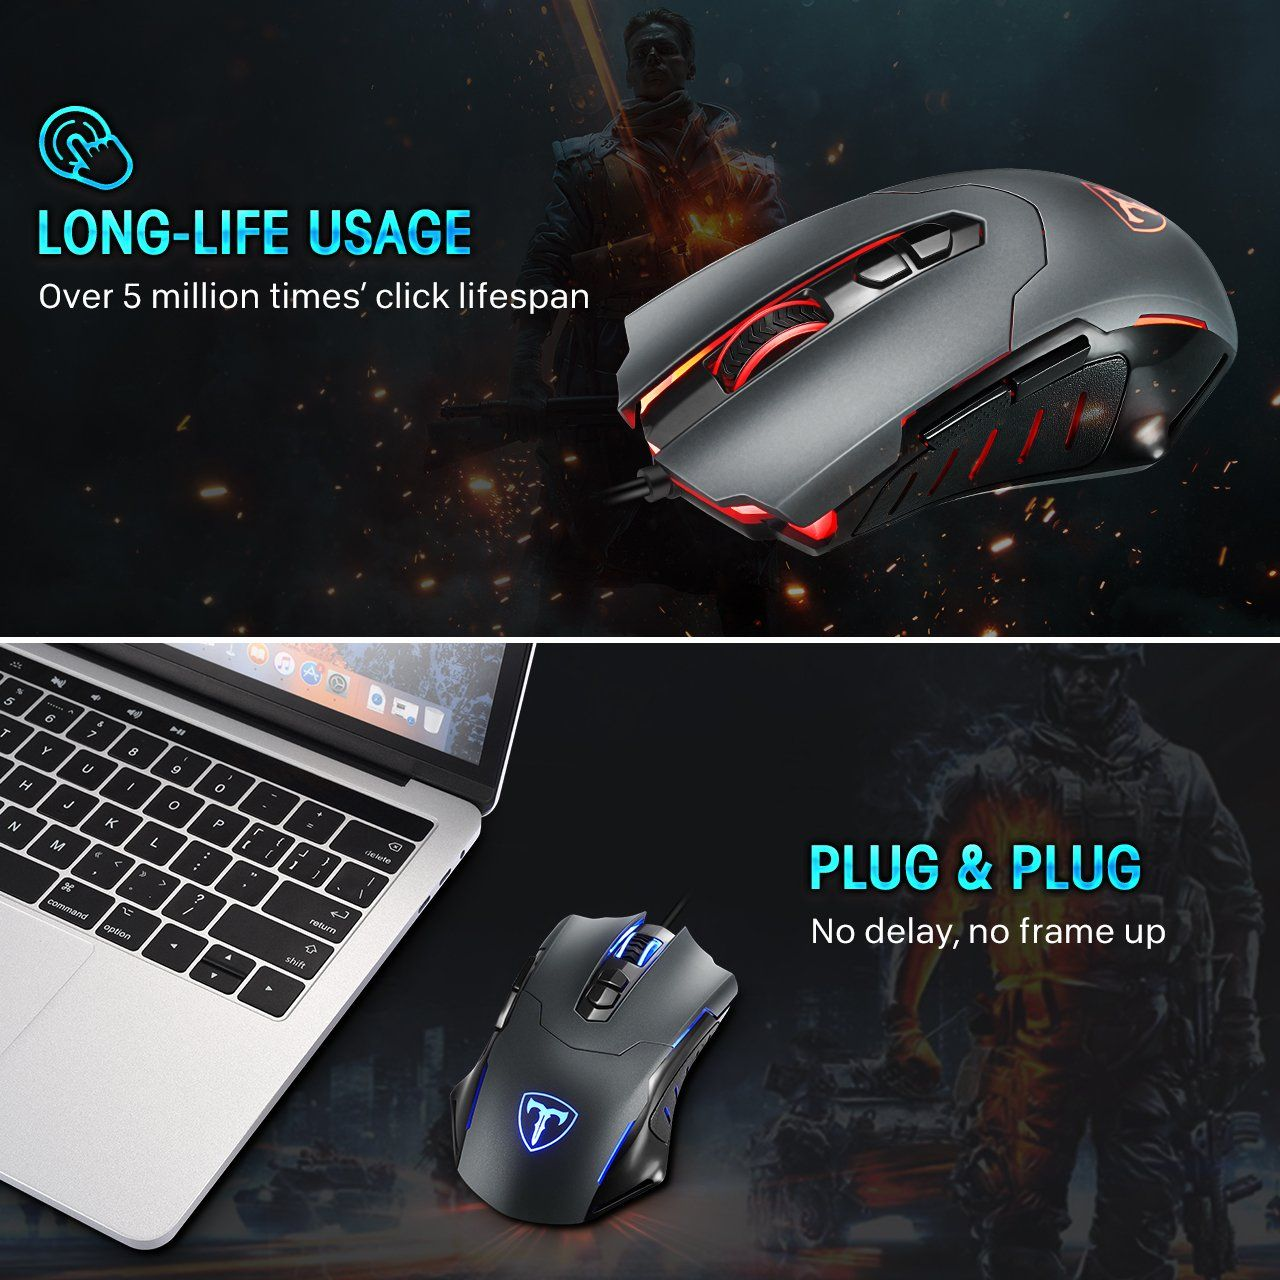 Pictek Gaming Mouse Wired 7200 Dpi Programmable Breathing Light Ergonomic Game Usb Computer Mice Rgb Gamer Desktop L Mouse Computer Gaming Mouse Computer